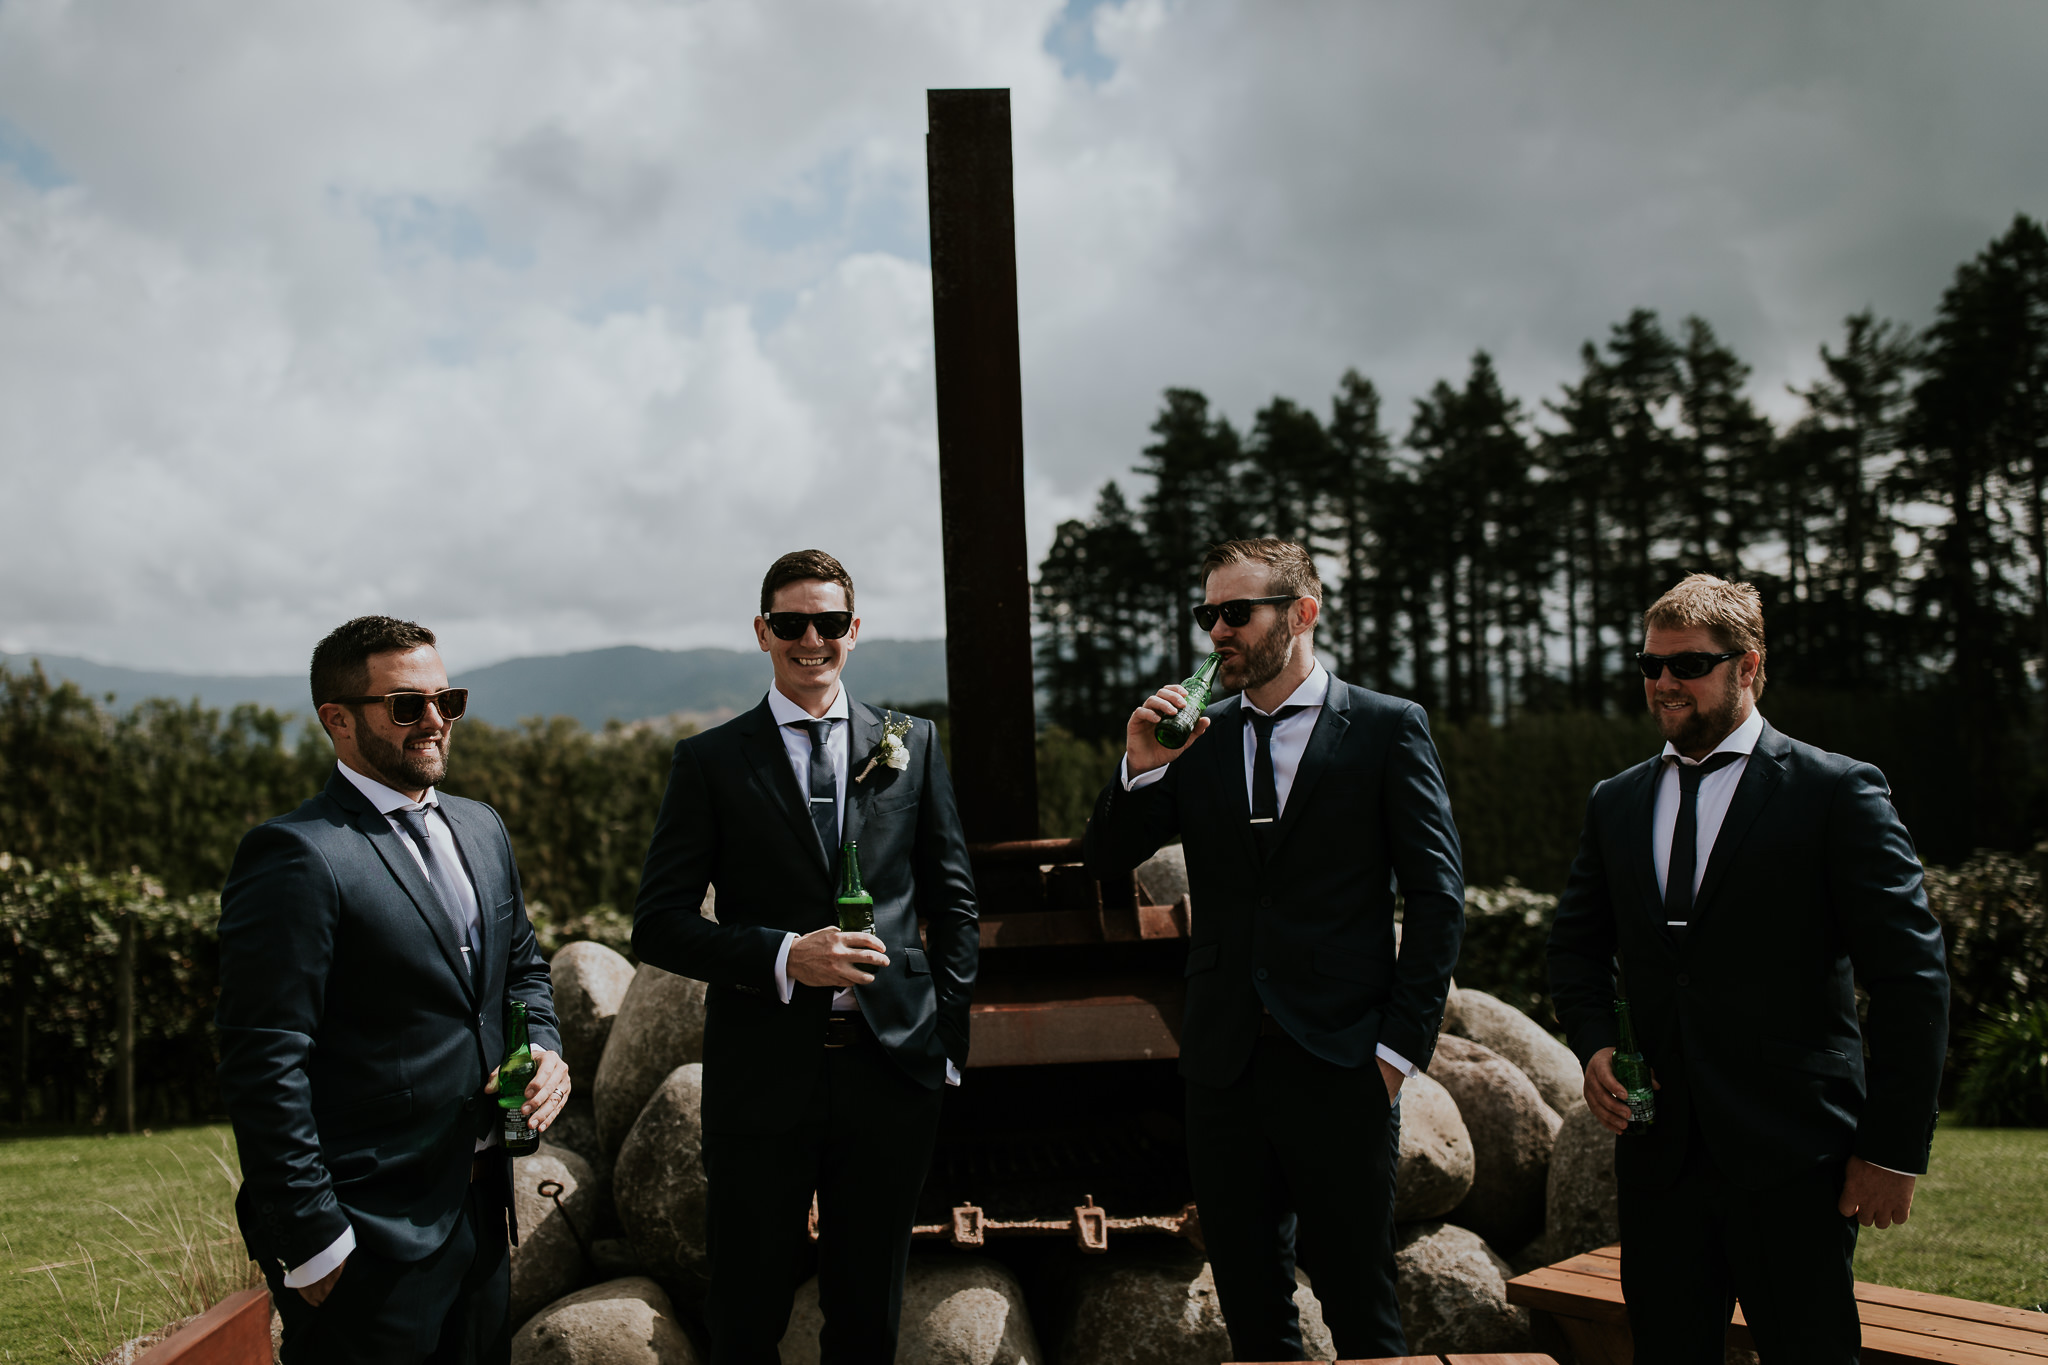 Kiwi groomsmen having some beers with the groom before the wedding starts